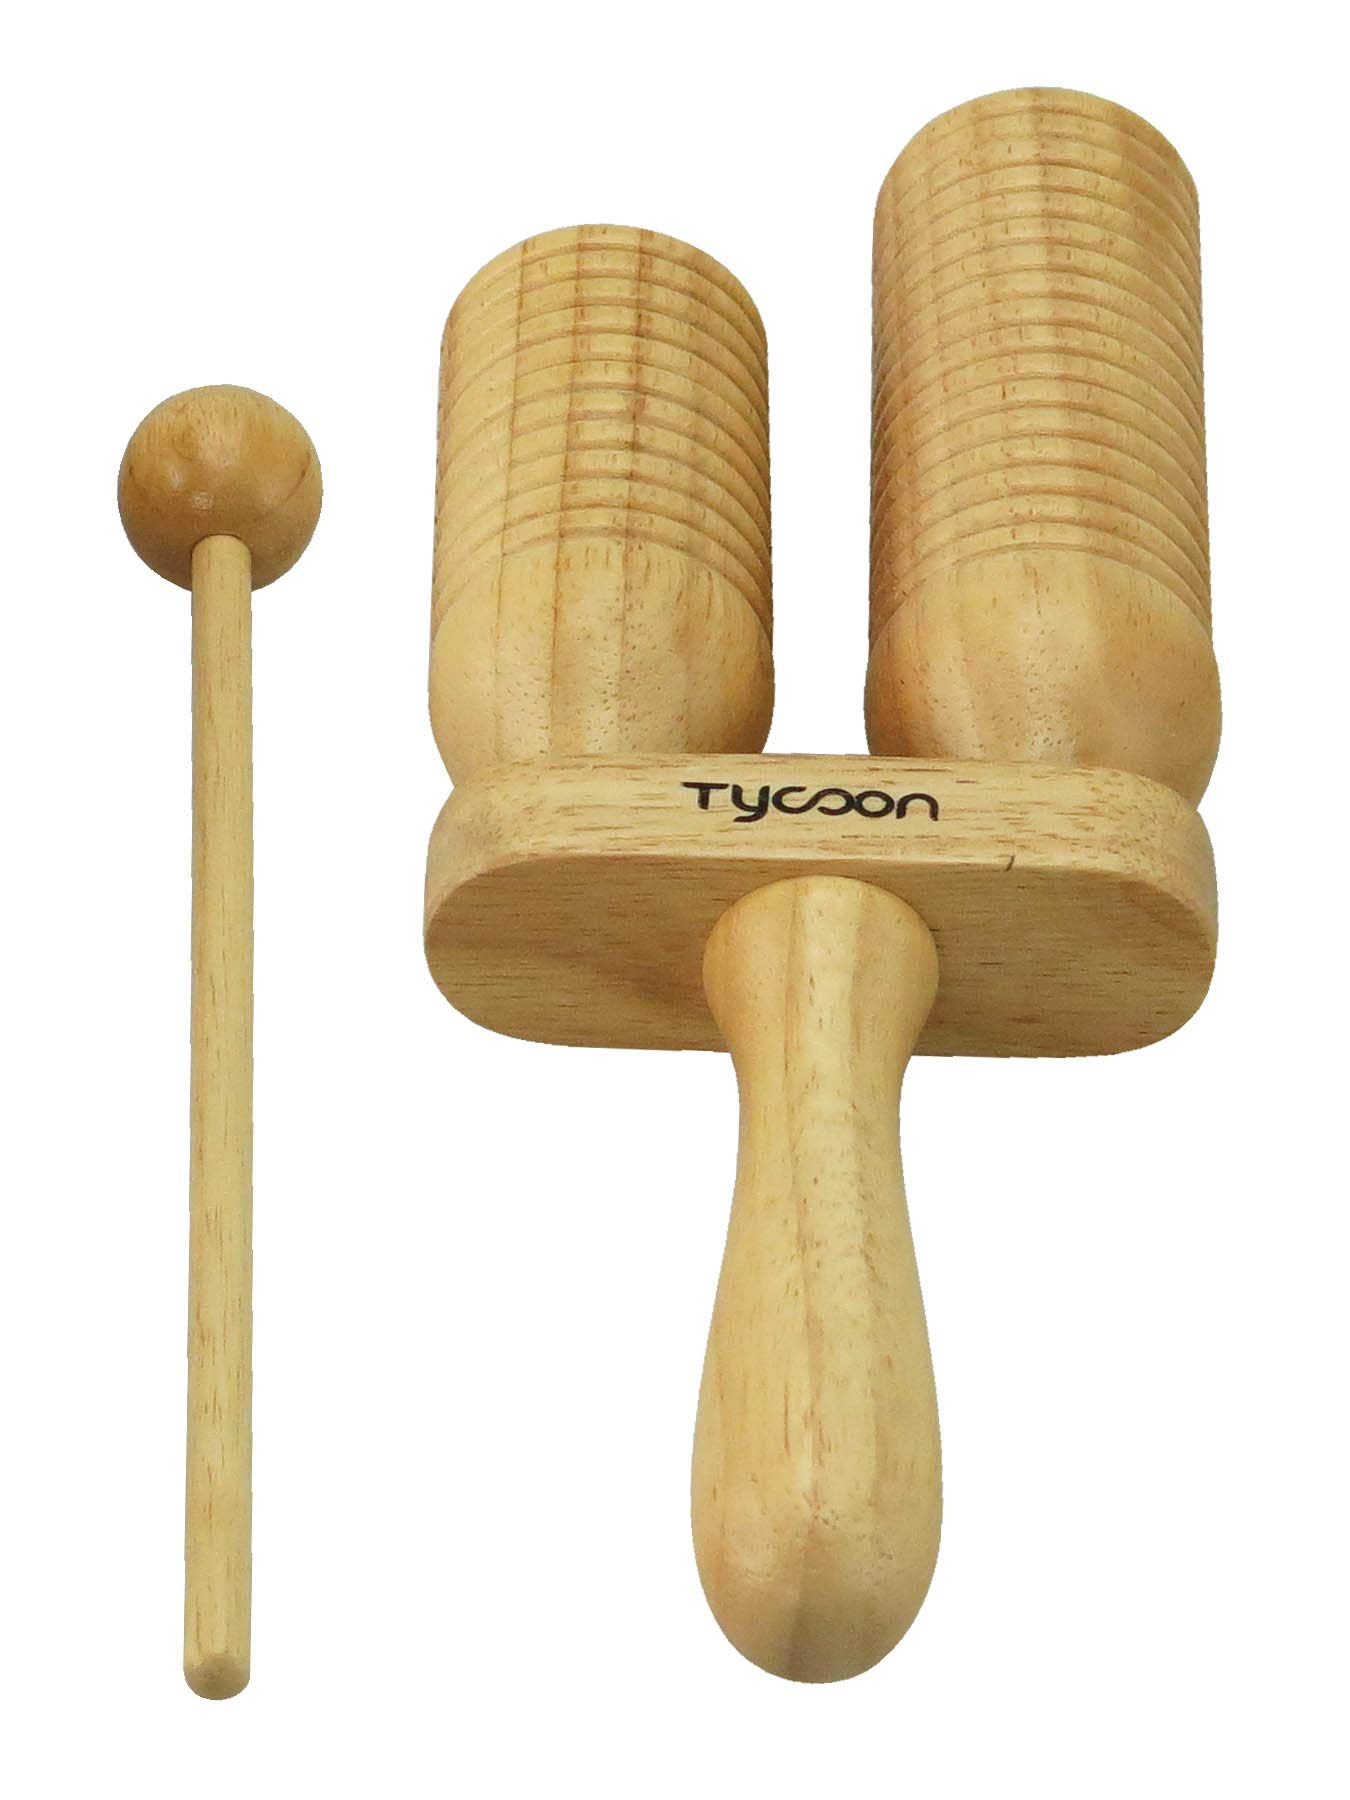 Tycoon Percussion Two Tone Wood Block by Tycoon Percussion